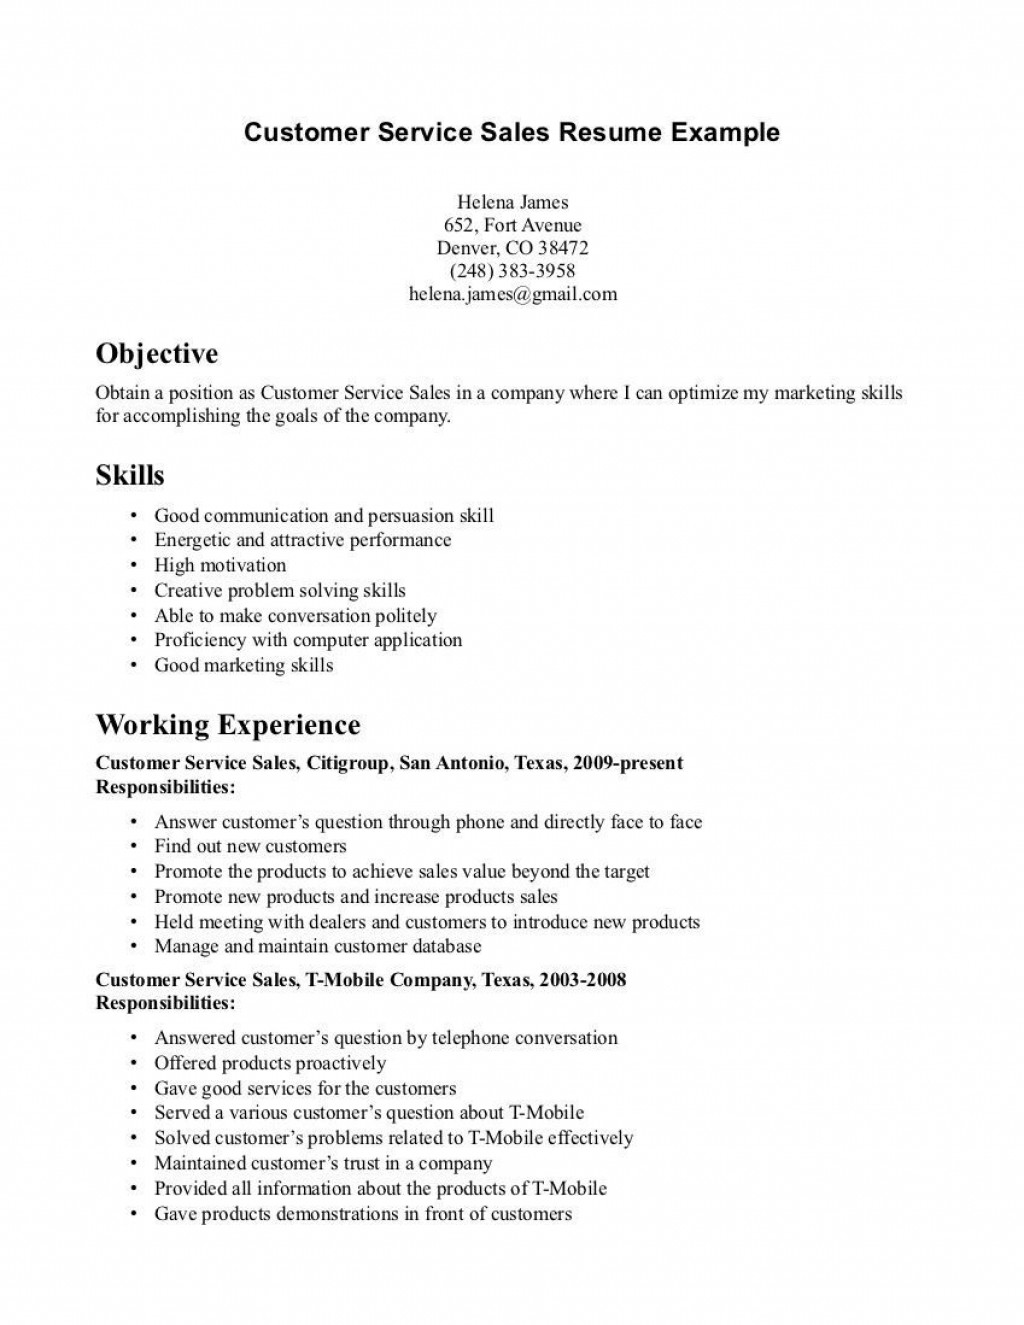 000 Best Customer Service Resume Template Photo  CvLarge